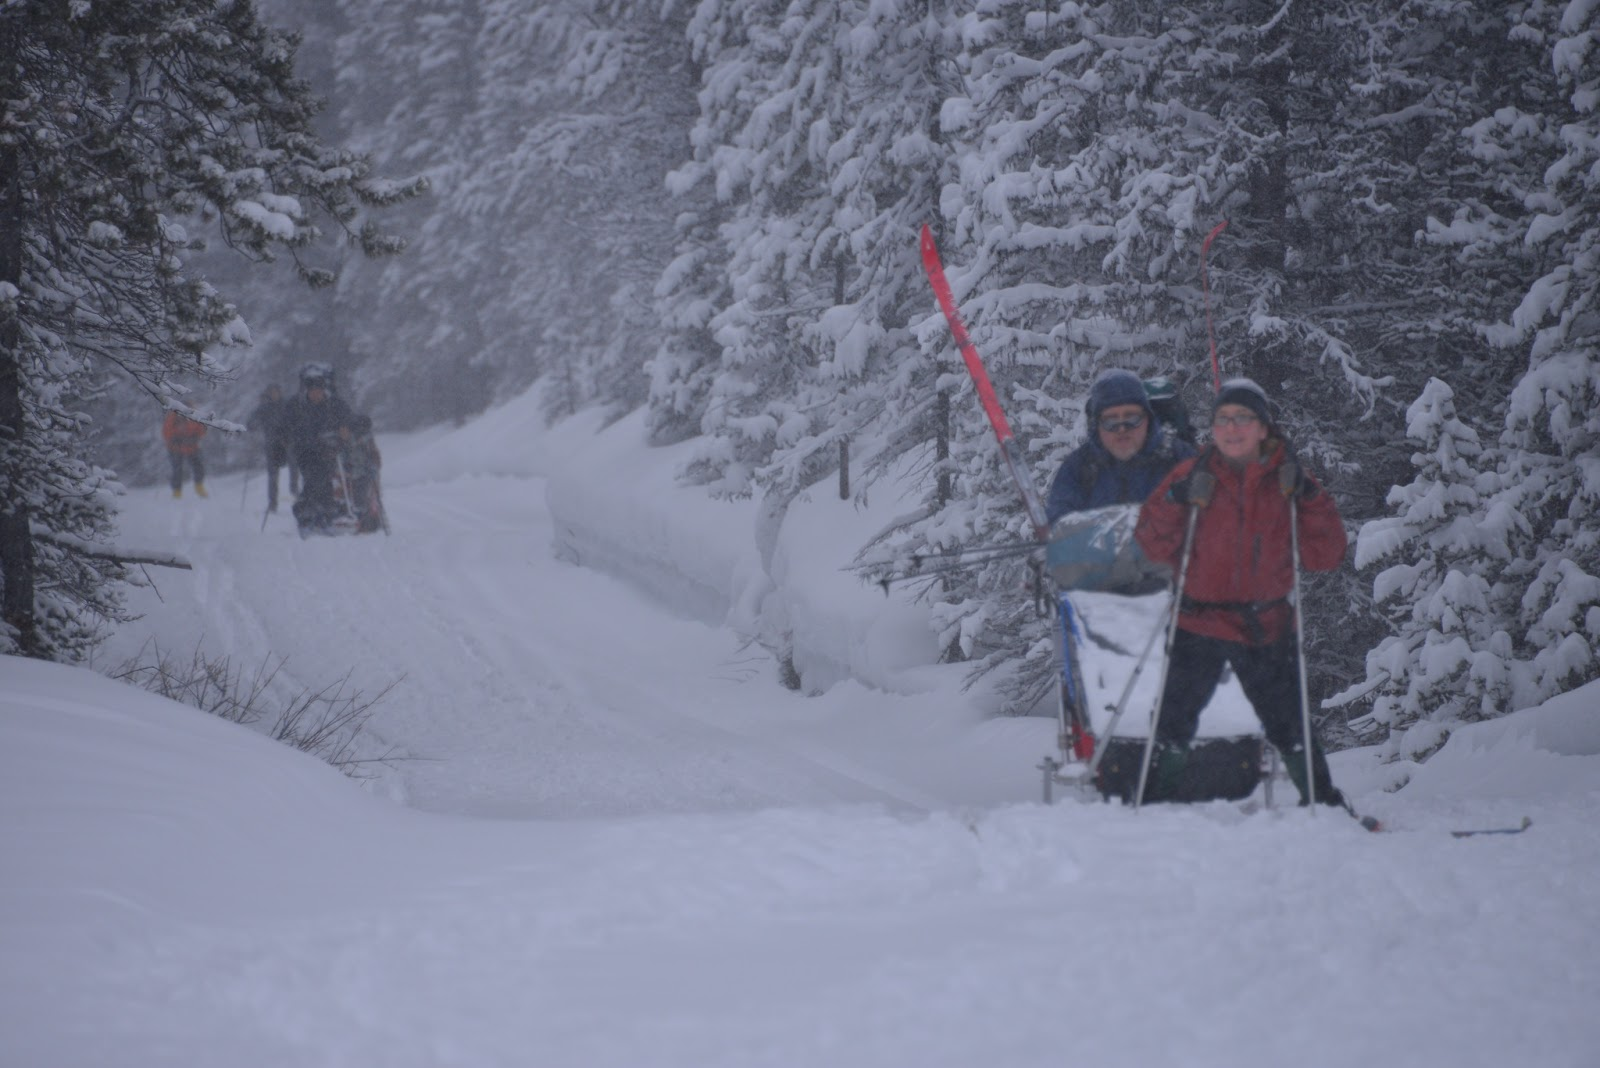 Family Adventures in the Canadian Rockies: March 2013